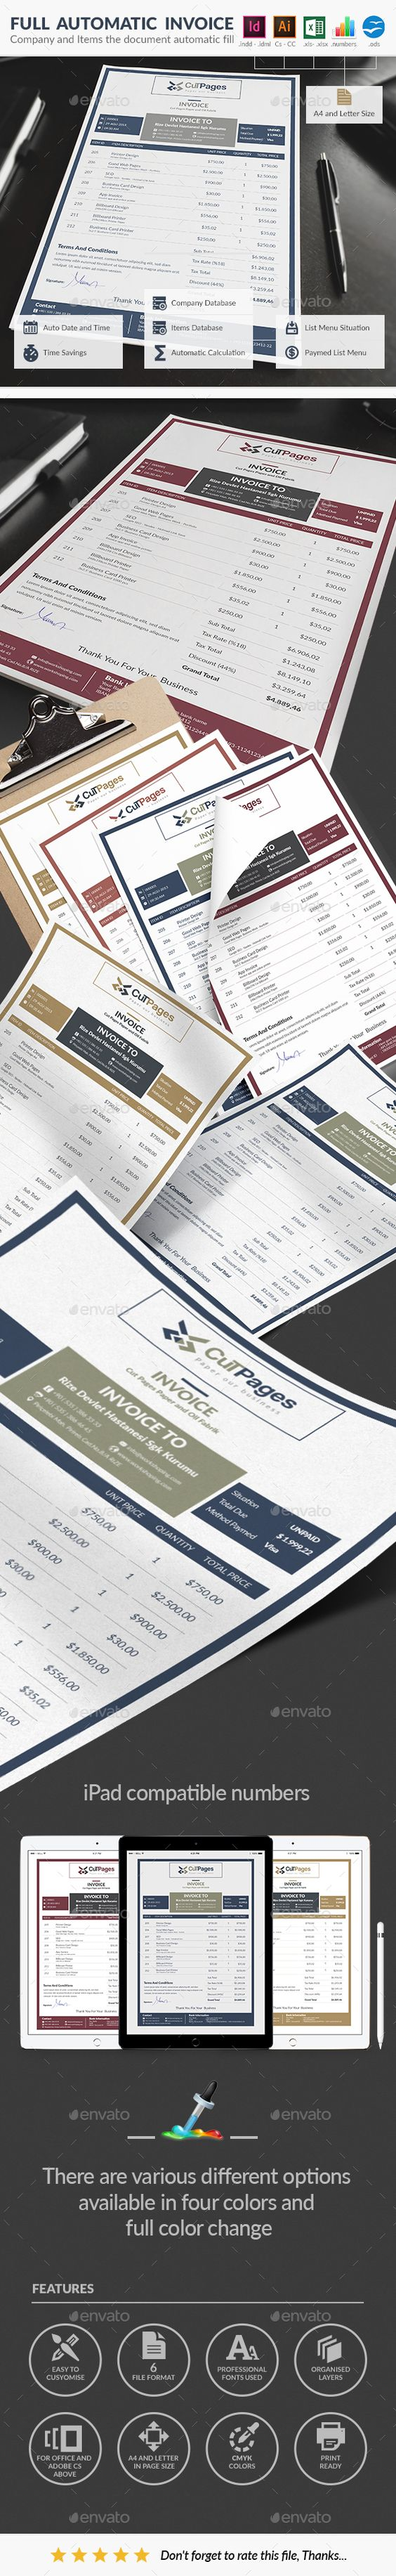 invoice design, invoice template and templates free on pinterest, Invoice examples